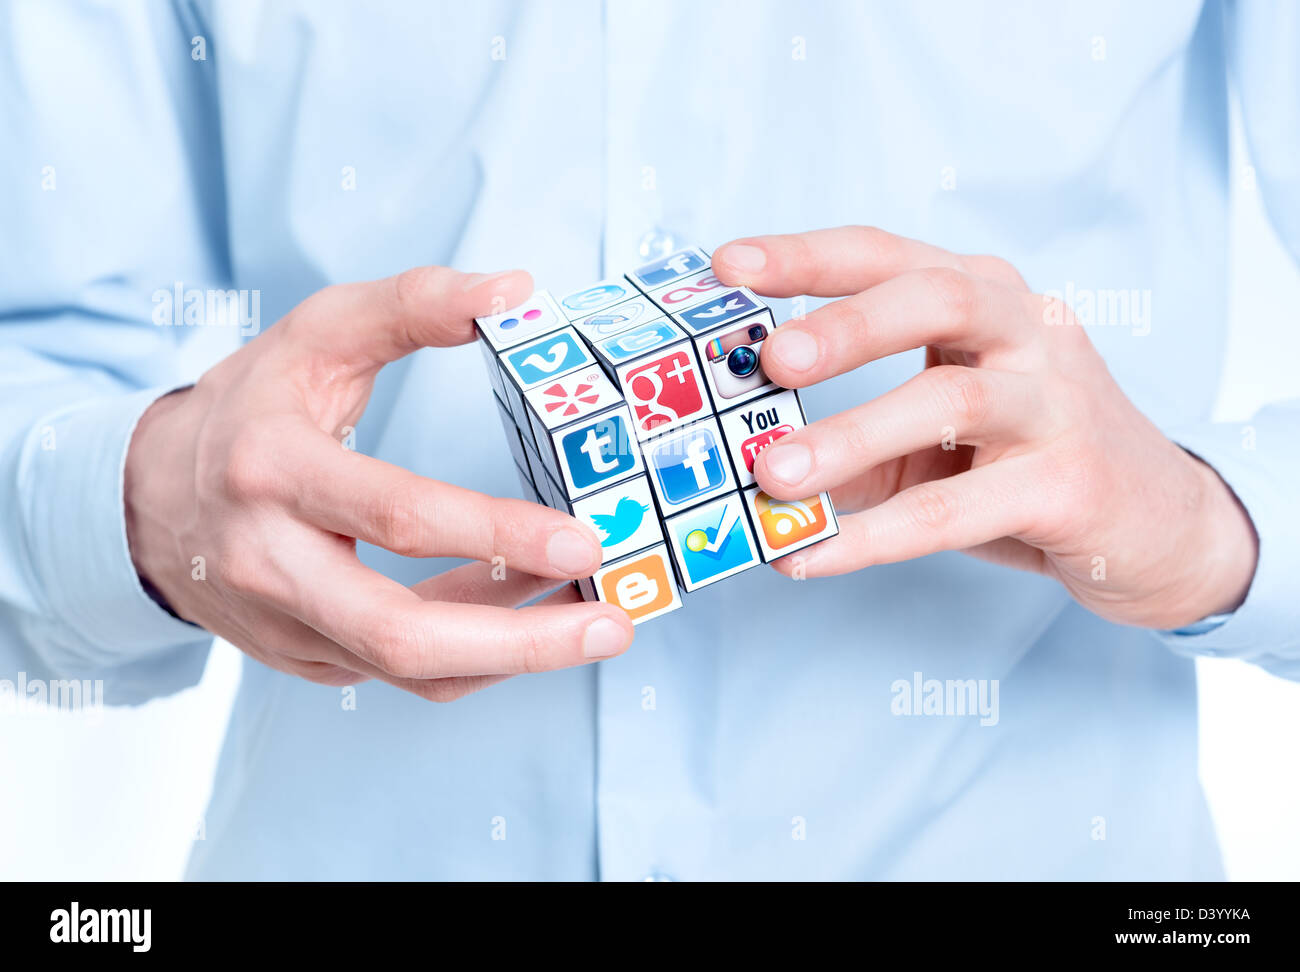 Businessman solving rubik's cube with logotypes of well-known social media brand's. Stock Photo